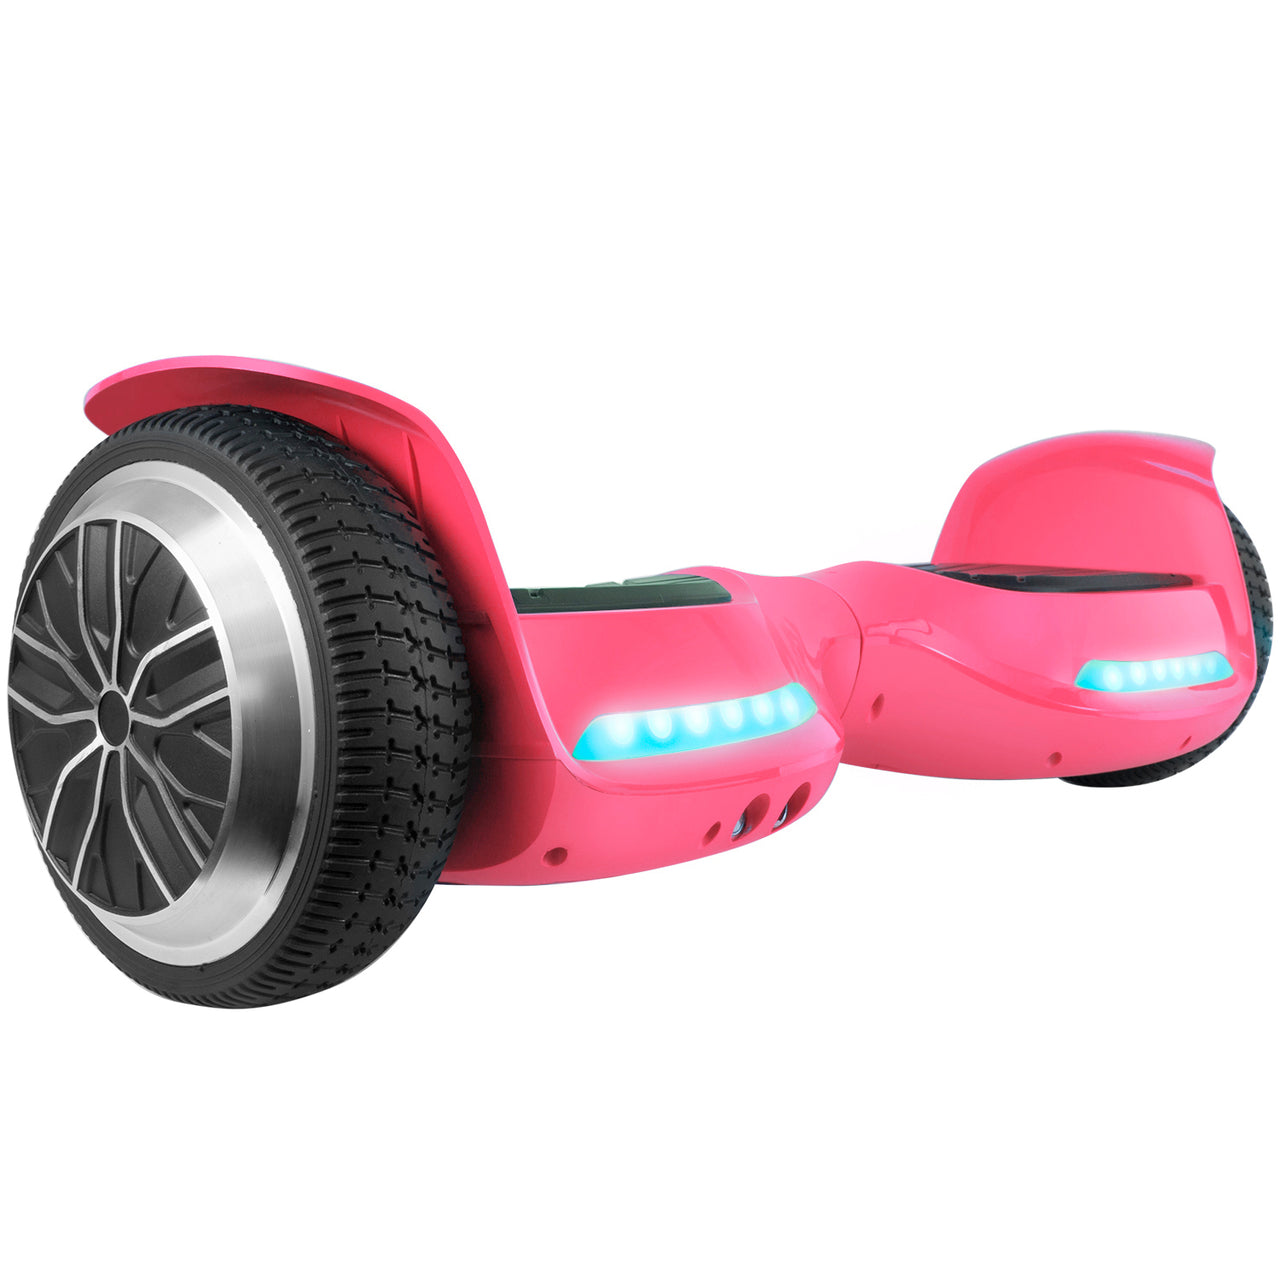 XPRIT Turtle Series Hoverboard Pink, 6.5""